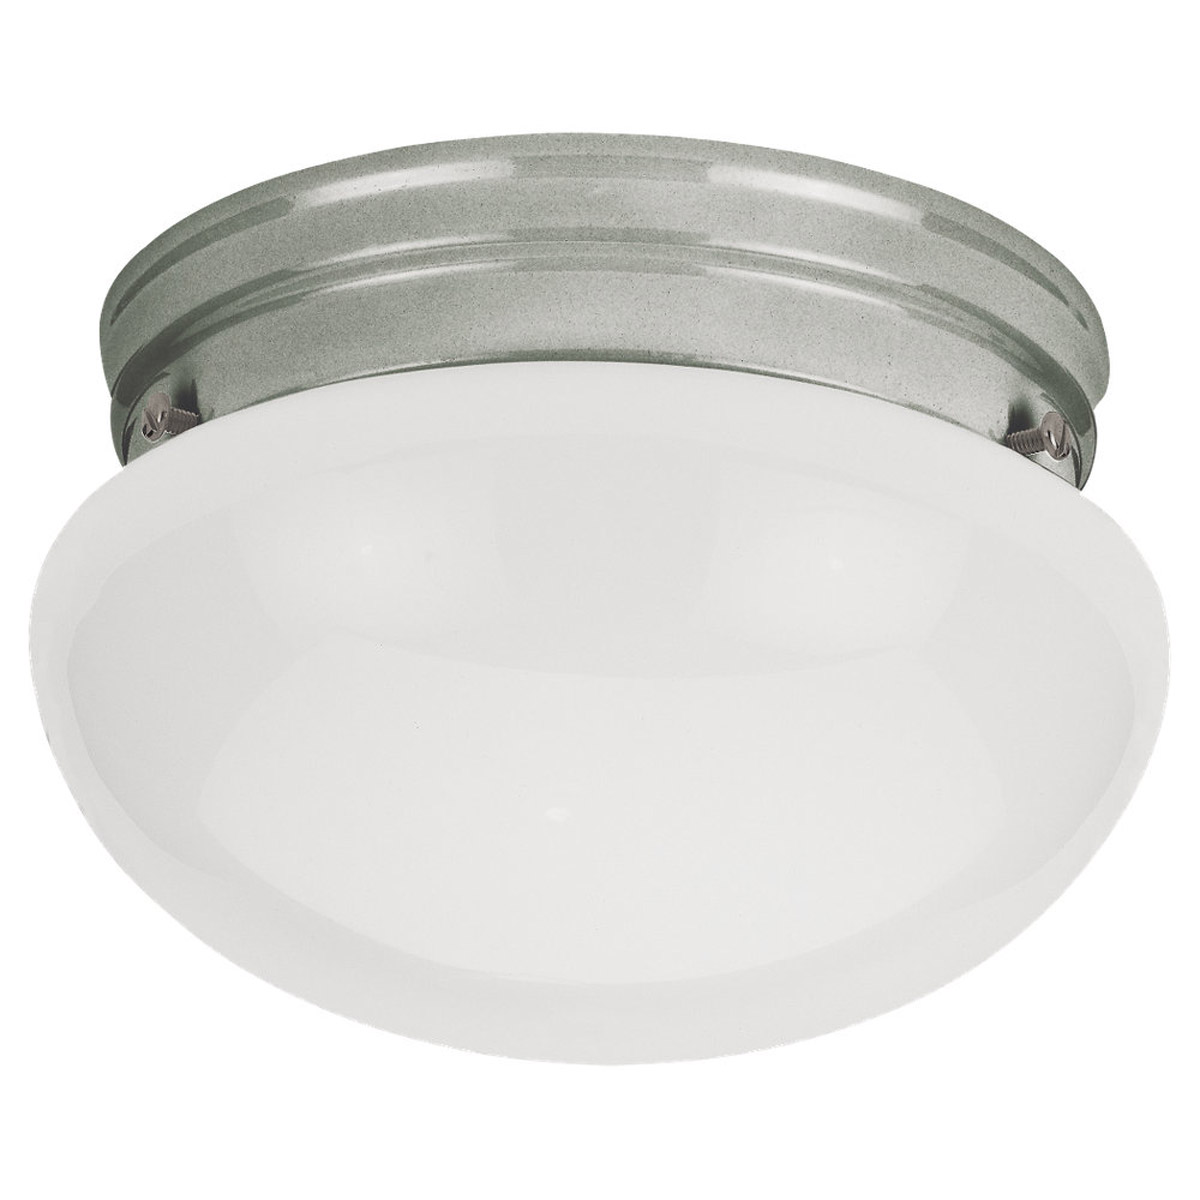 Sea Gull Lighting Webster 1 Light Flush Mount in Brushed Nickel 5326-962 photo